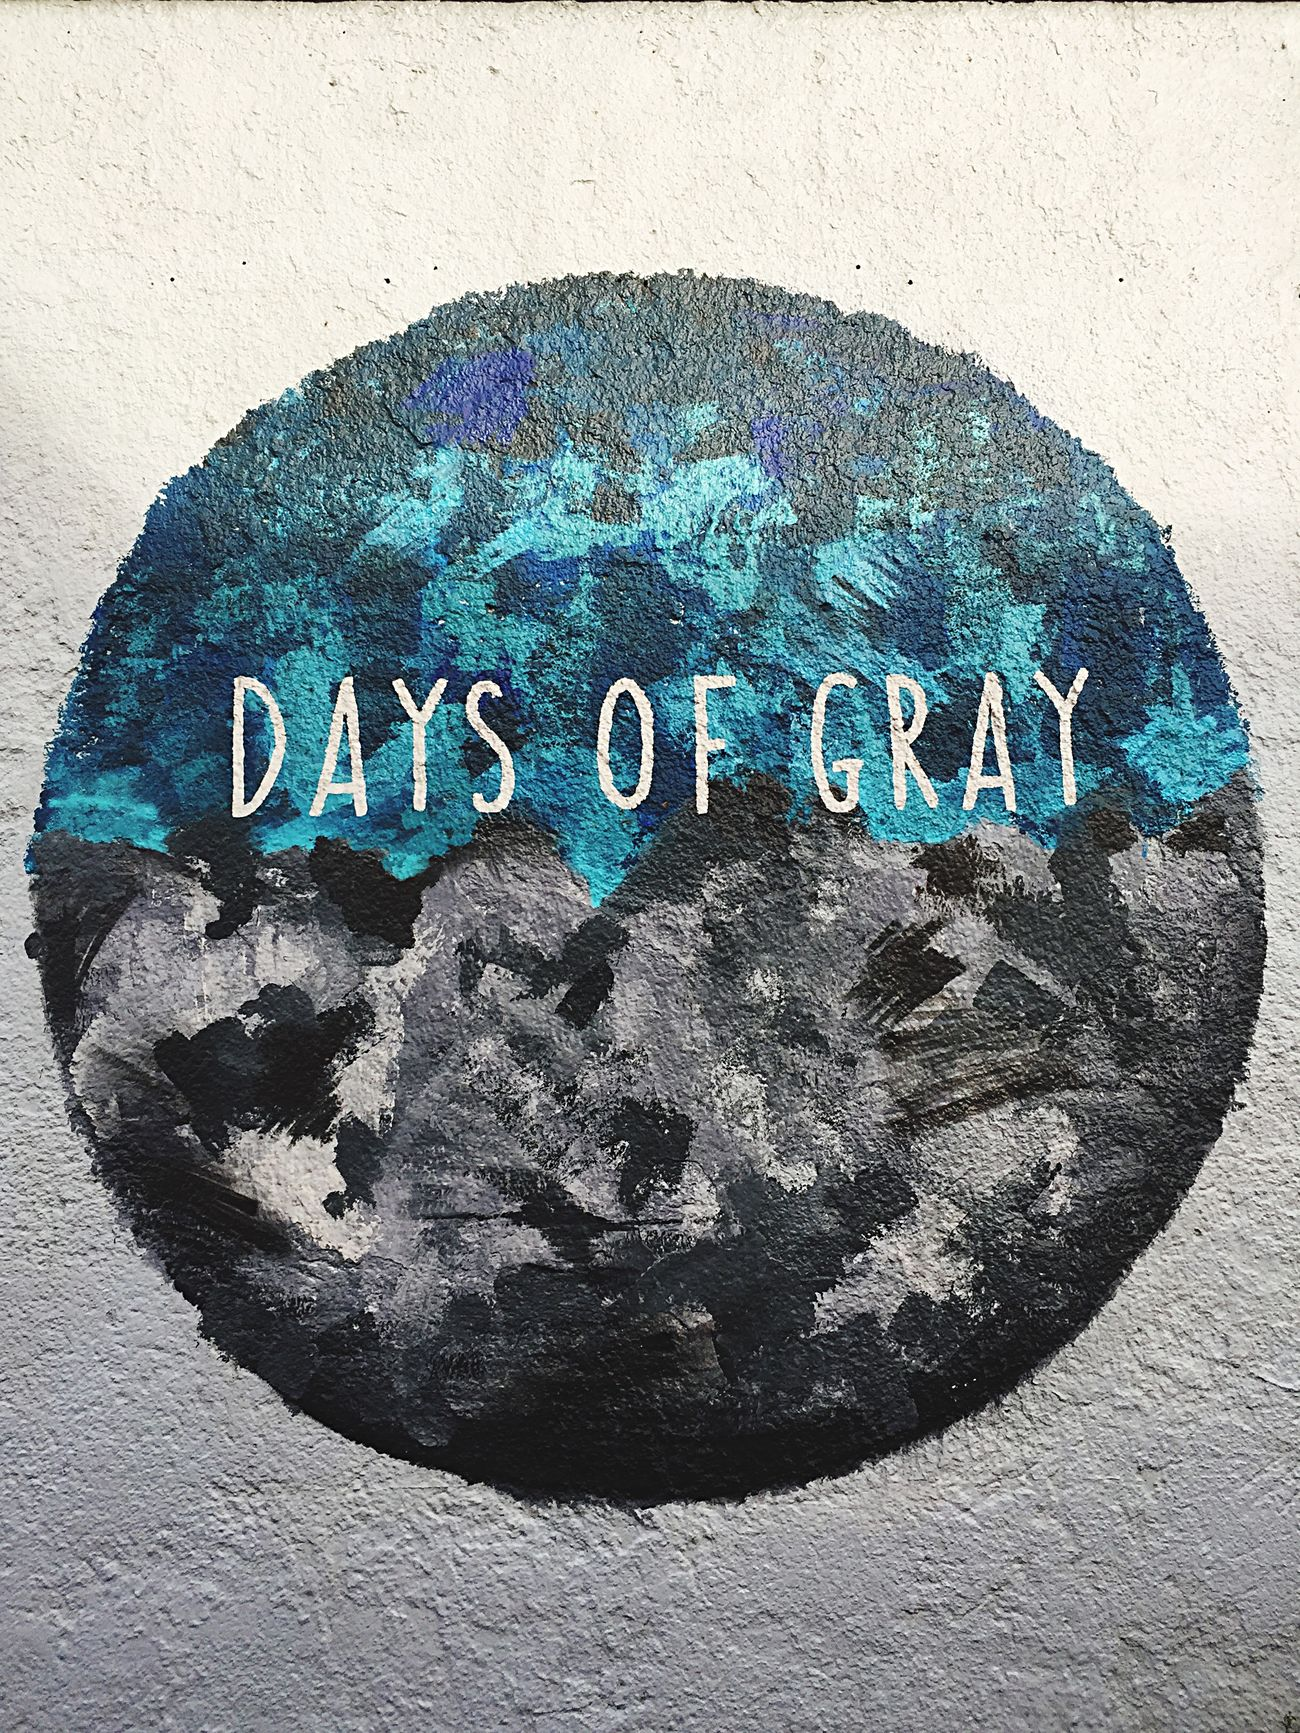 Graffiti ArtWork Days Of Grey World Planet Wall